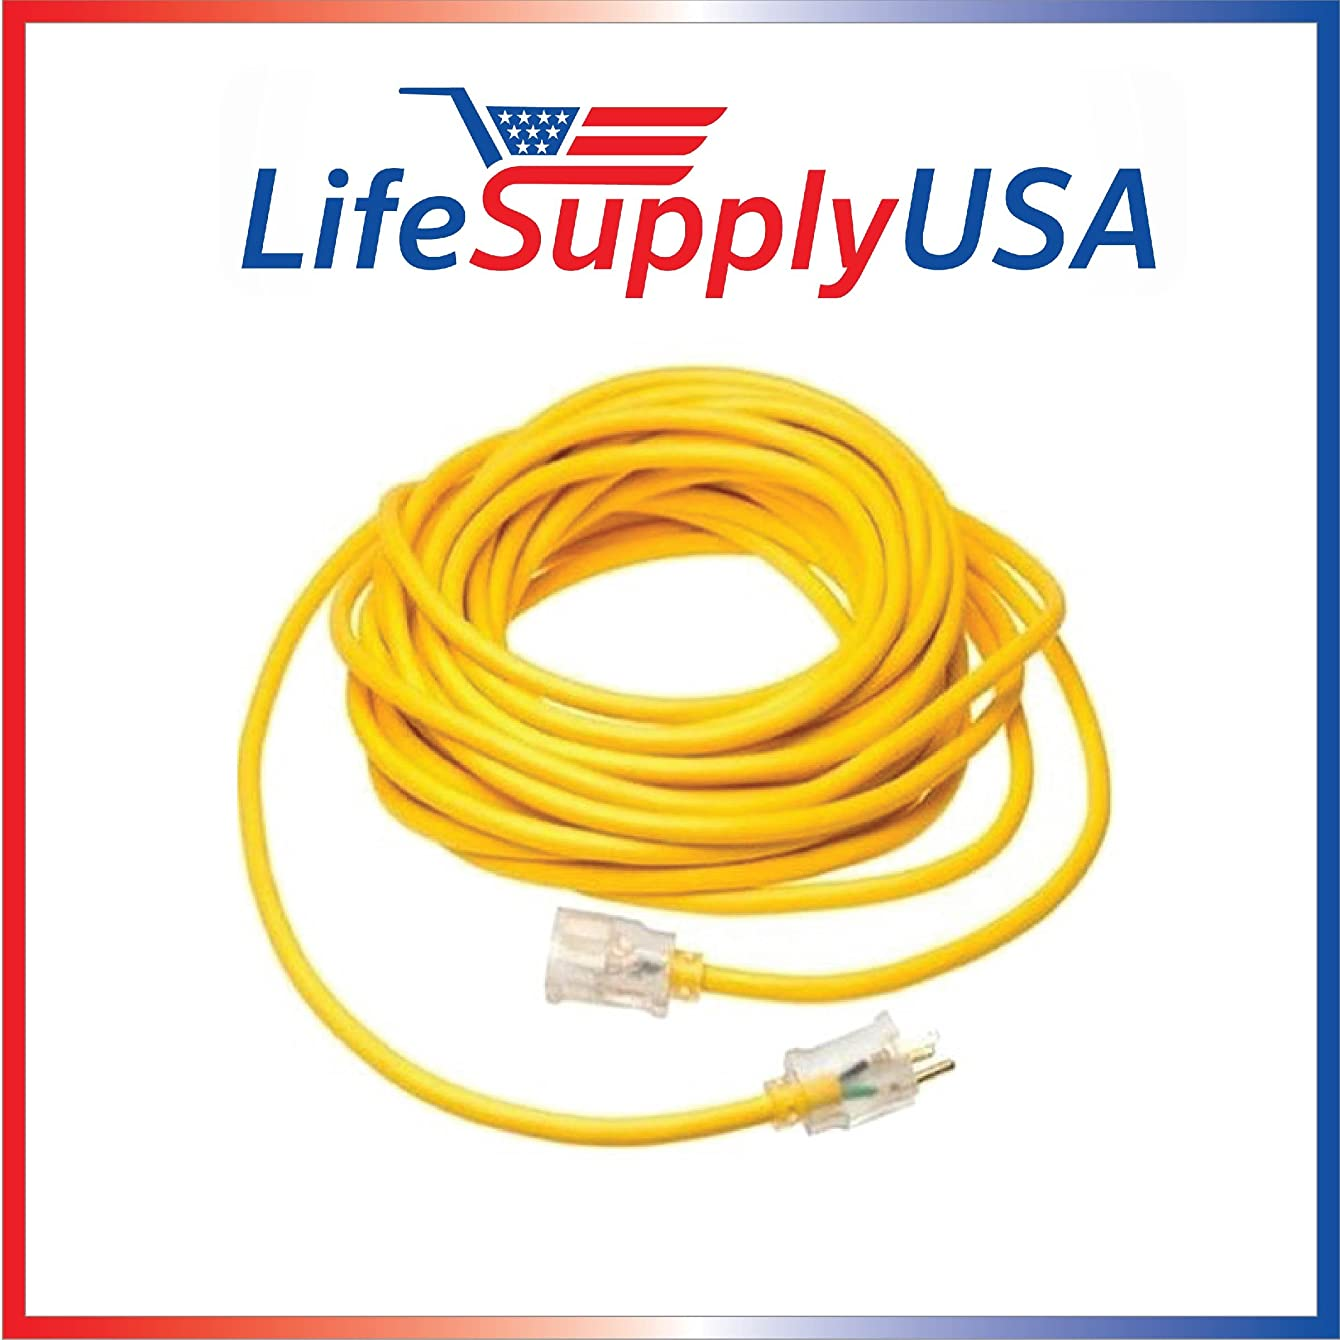 2 Pack - 10/3 100ft SJTW Lighted End Extension Cord, 15 Amp, 300 Volt, 1875 Watt, Super Heavy Duty Outdoor Jacket (100 feet) by LifeSupplyUSA